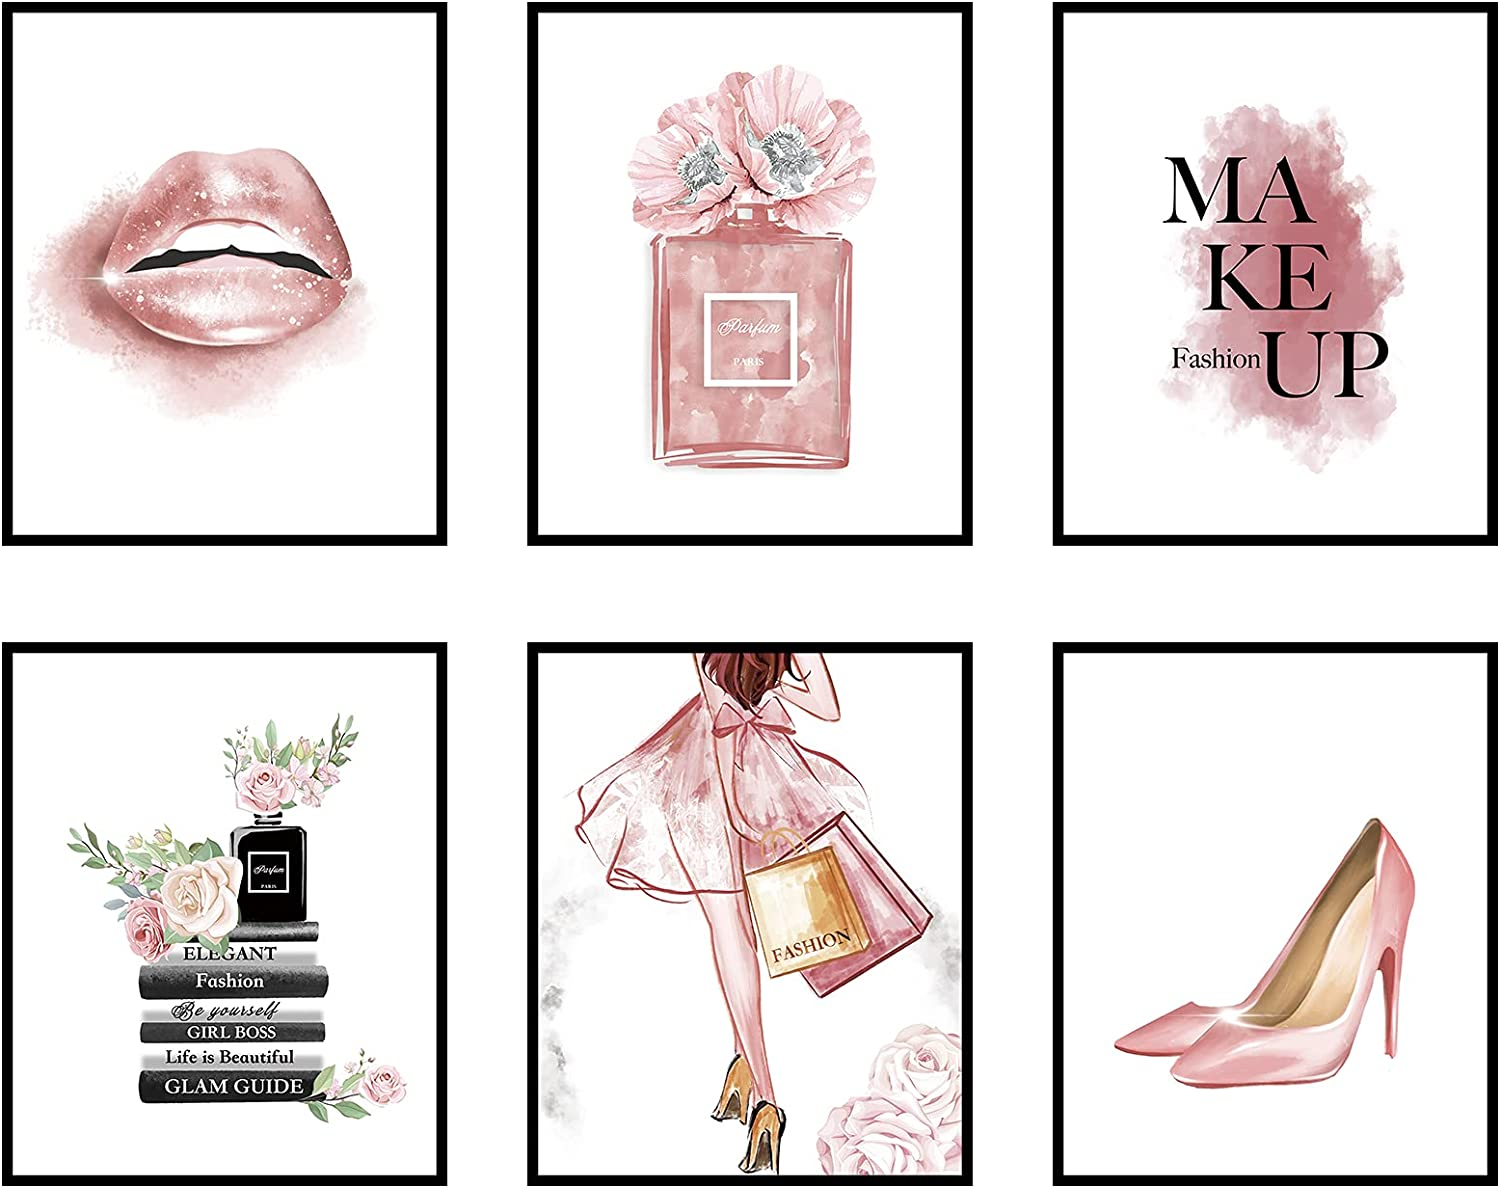 Glam Pink Fashion Wall Art Girls Room Decor Wall Pink Golden Fashion Shopping lady Perfume Flower Book High Heels Posters Prints Women Decor Bedroom (8x10 in Unframed) (8x10 in, Pink)